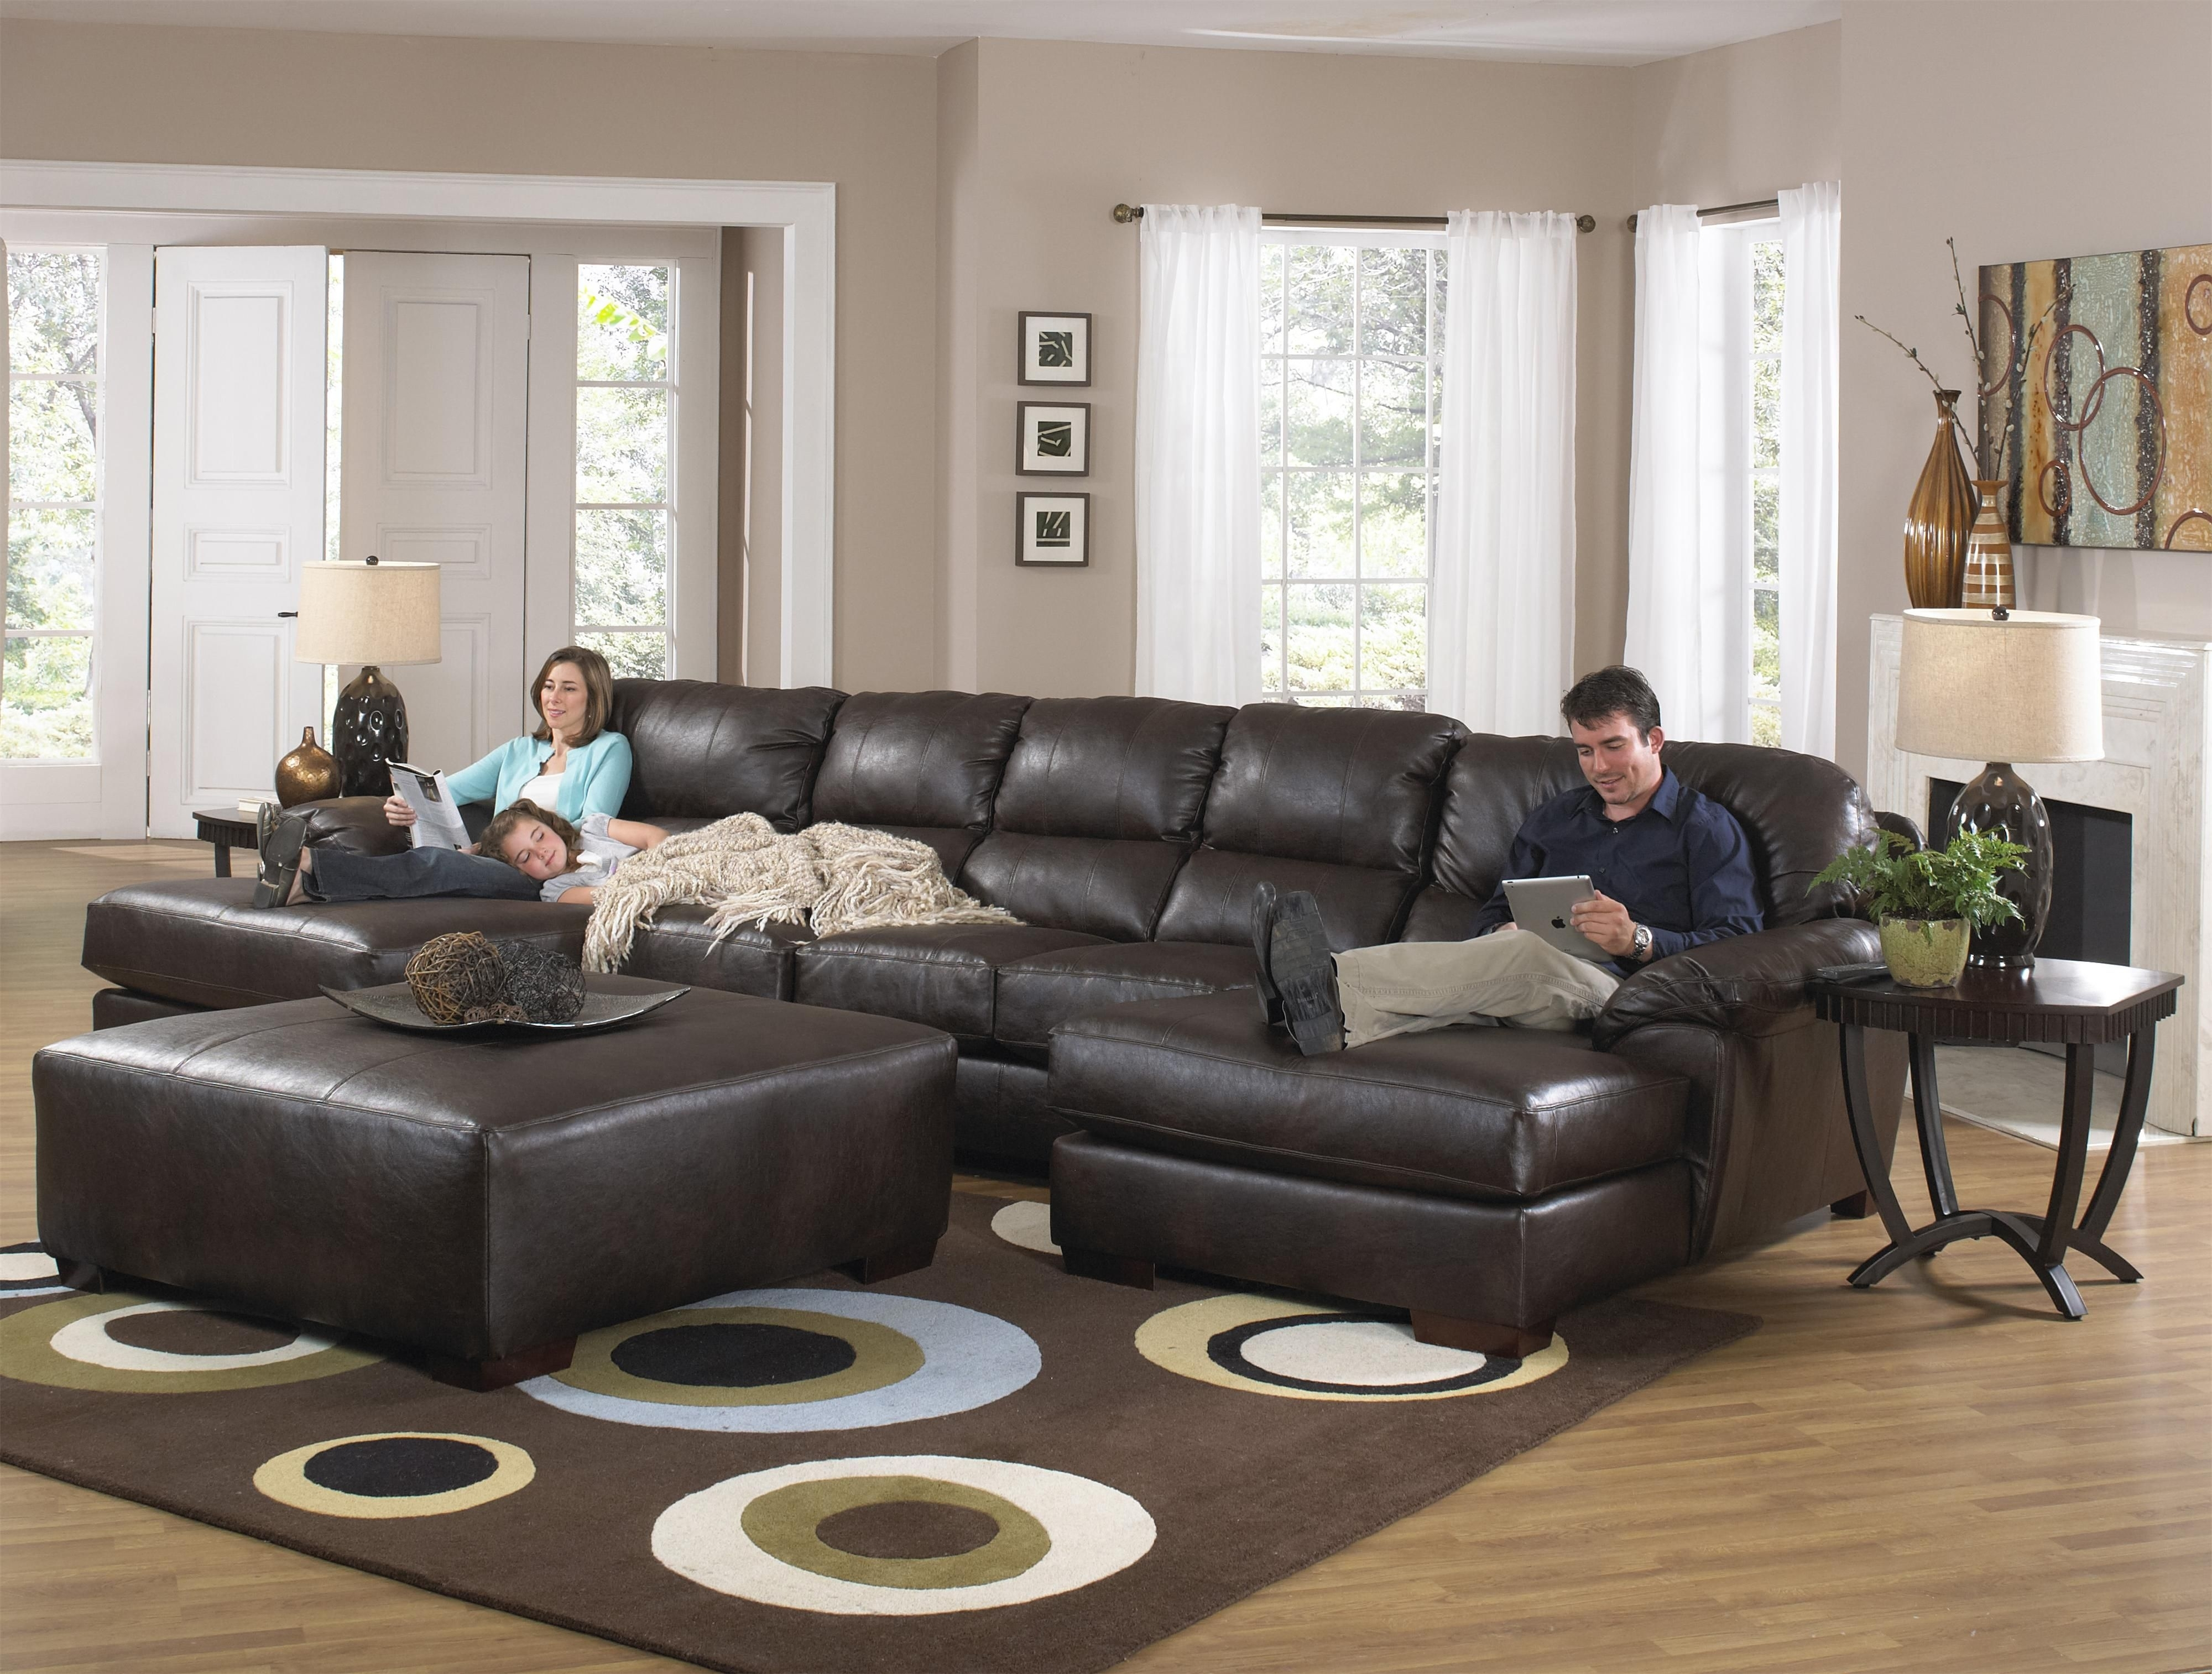 Lawson Two Chaise Sectional Sofa With Five Total Seatsjackson throughout Jackson Tn Sectional Sofas (Image 6 of 10)